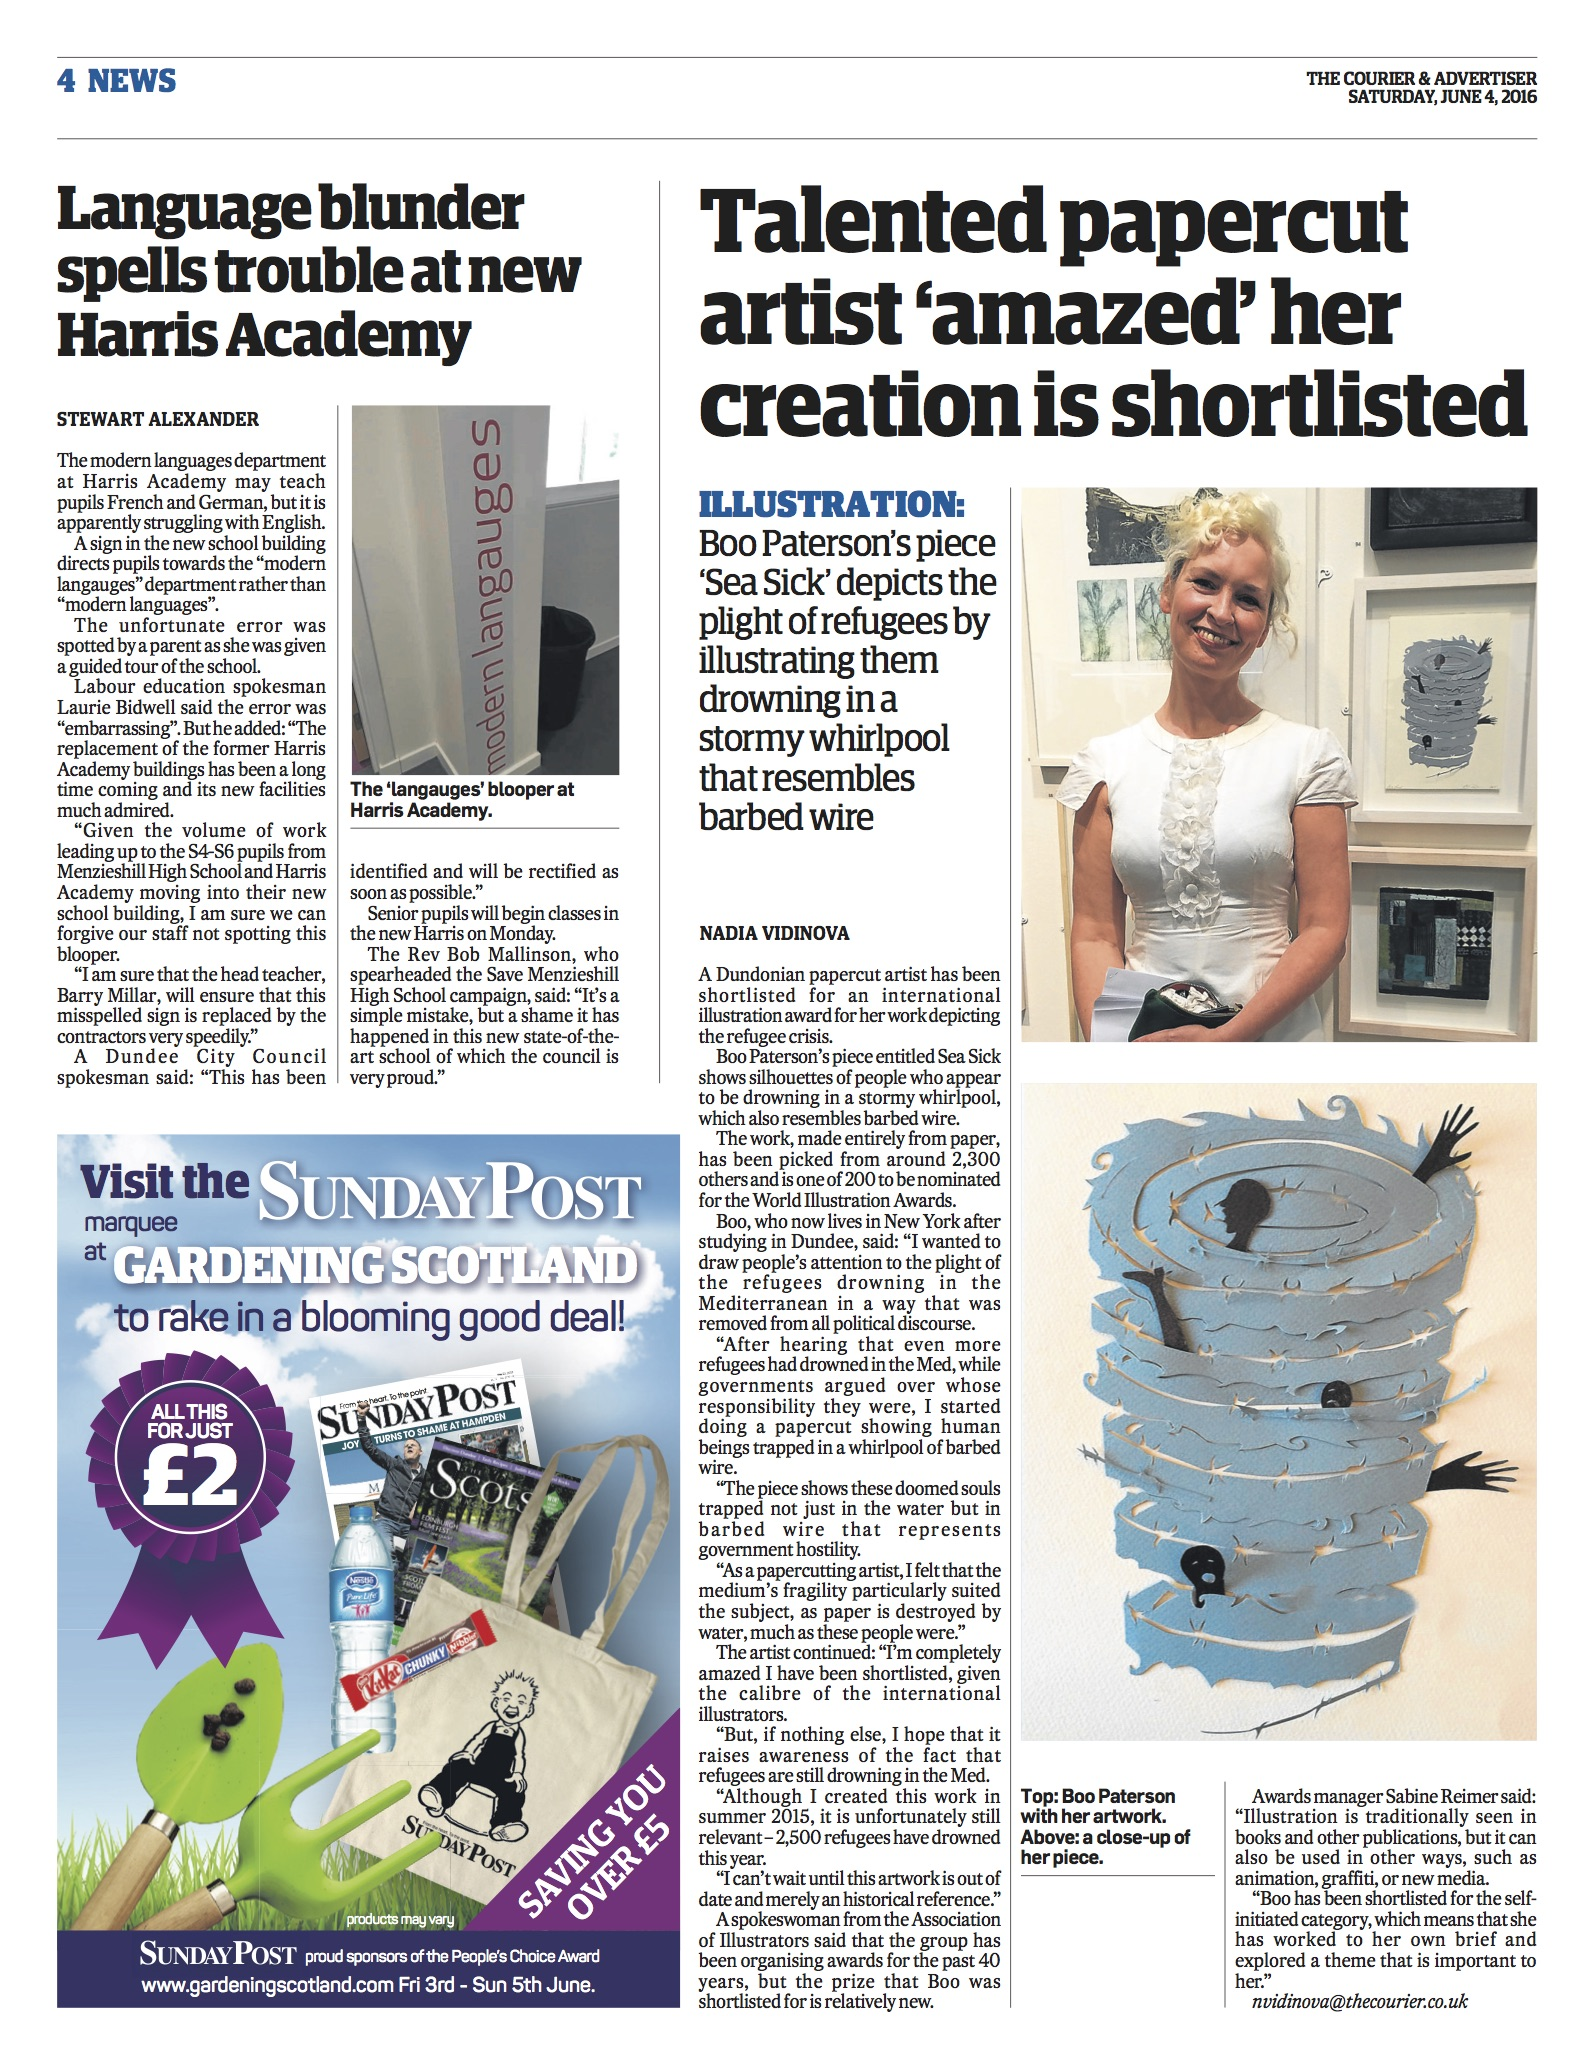 News story in The Courier about Boo Paterson's nomination in World Illustration Awards